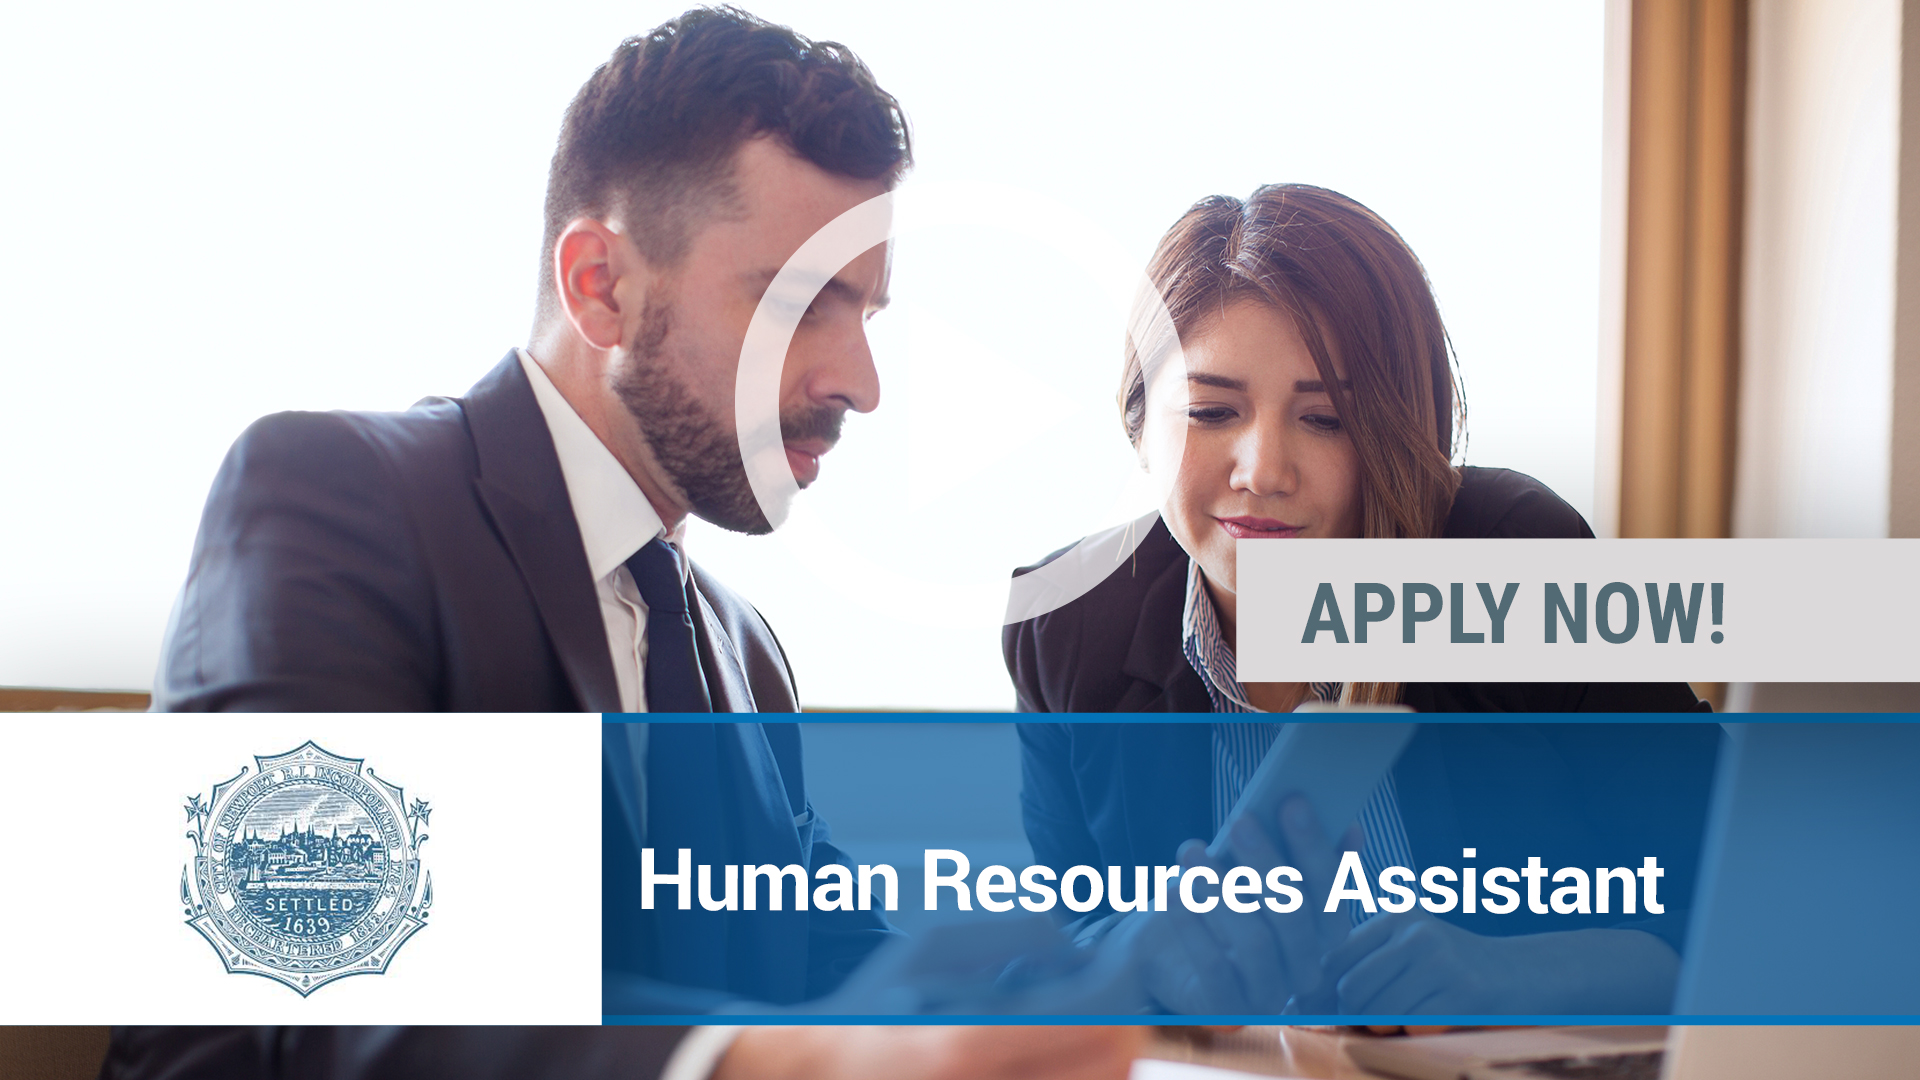 Watch our careers video for available job opening Human Resources Assistant in Newport, RI